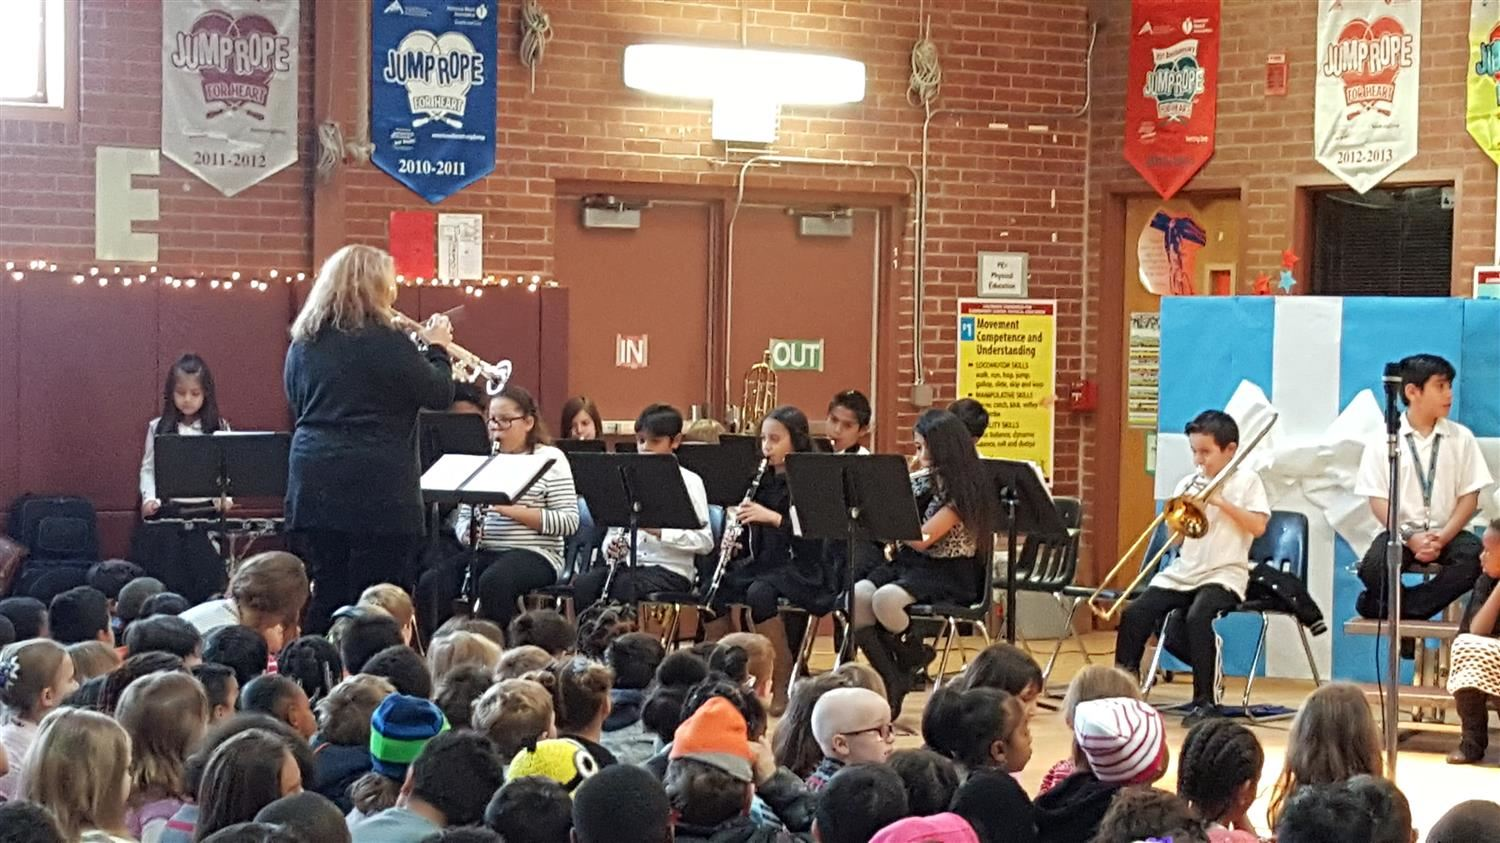 Band director leading students in school concert